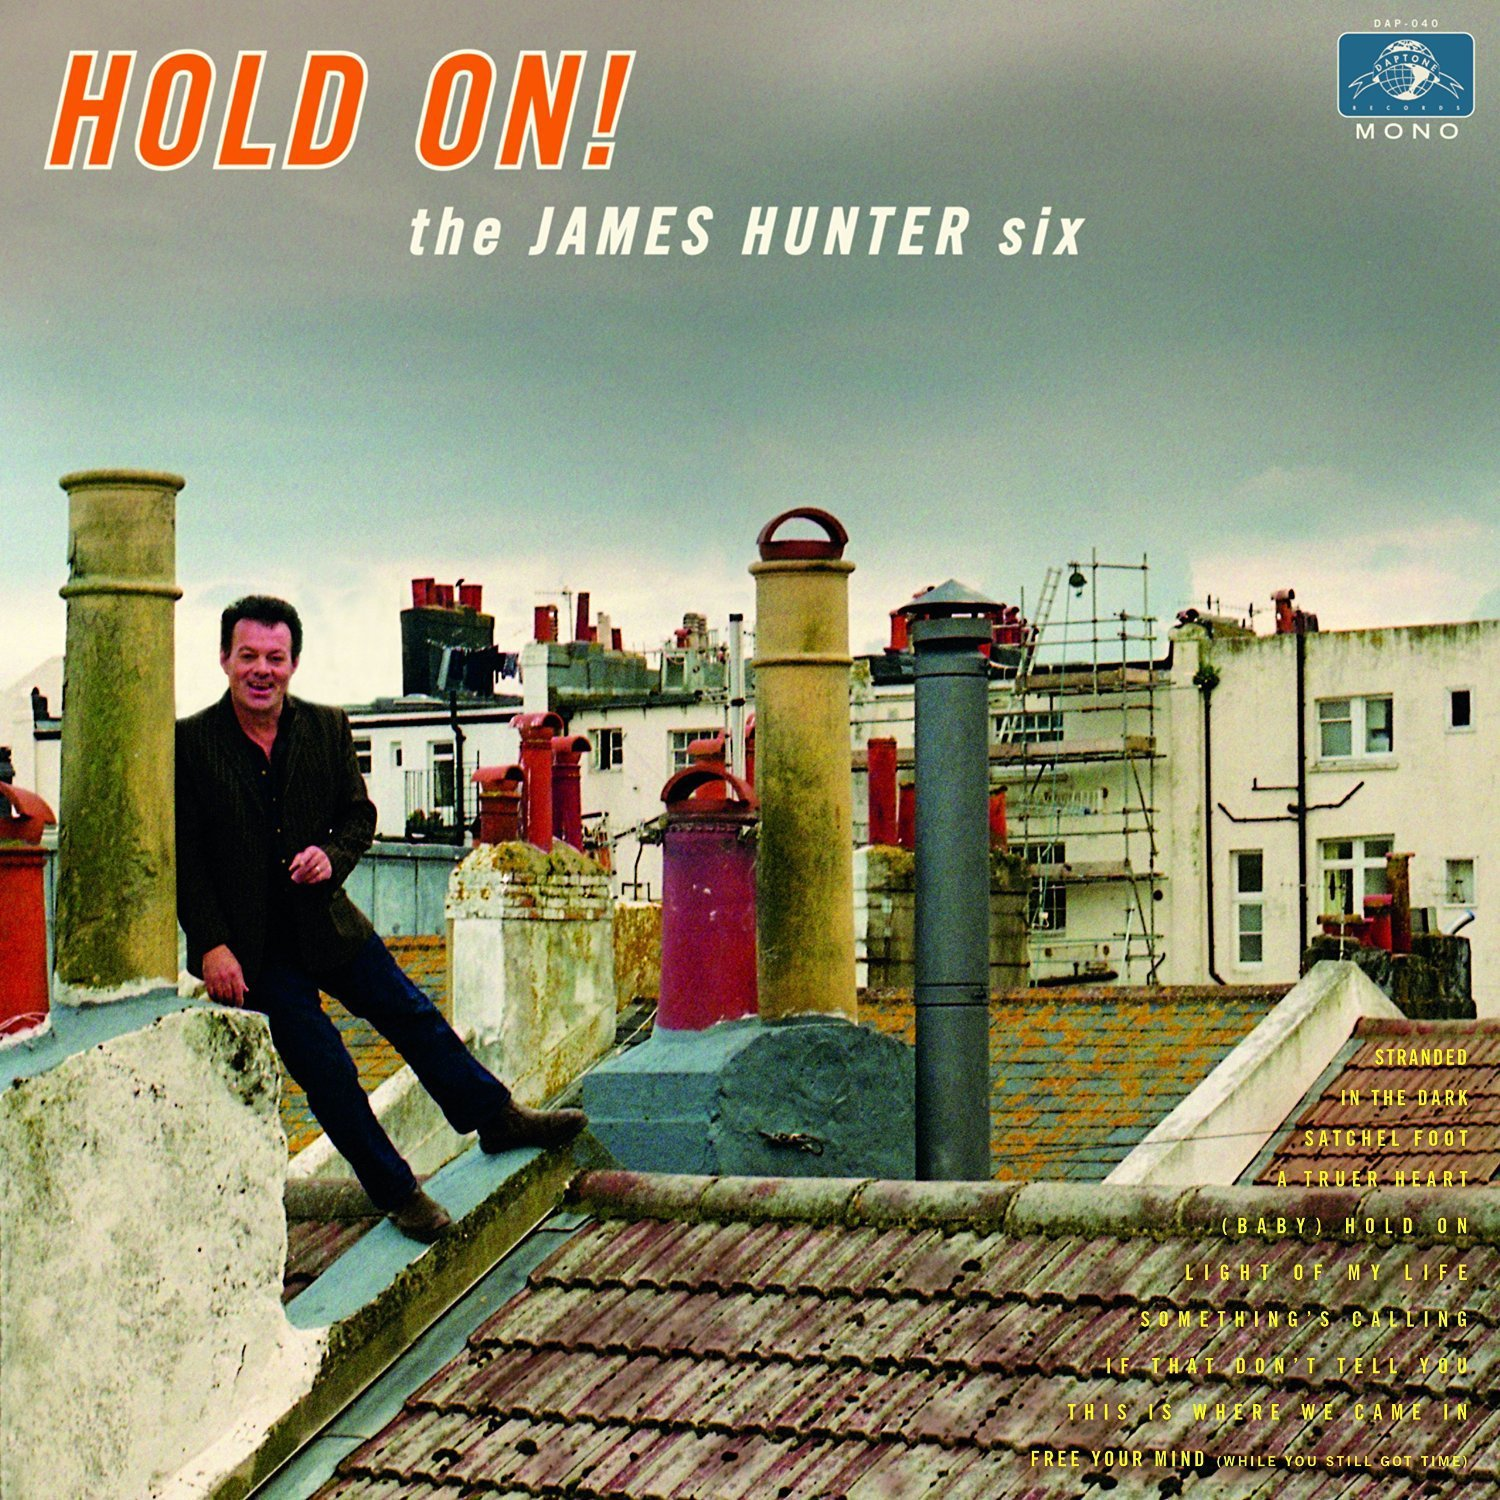 THE JAMES HUNTER SIX – Baby hold on